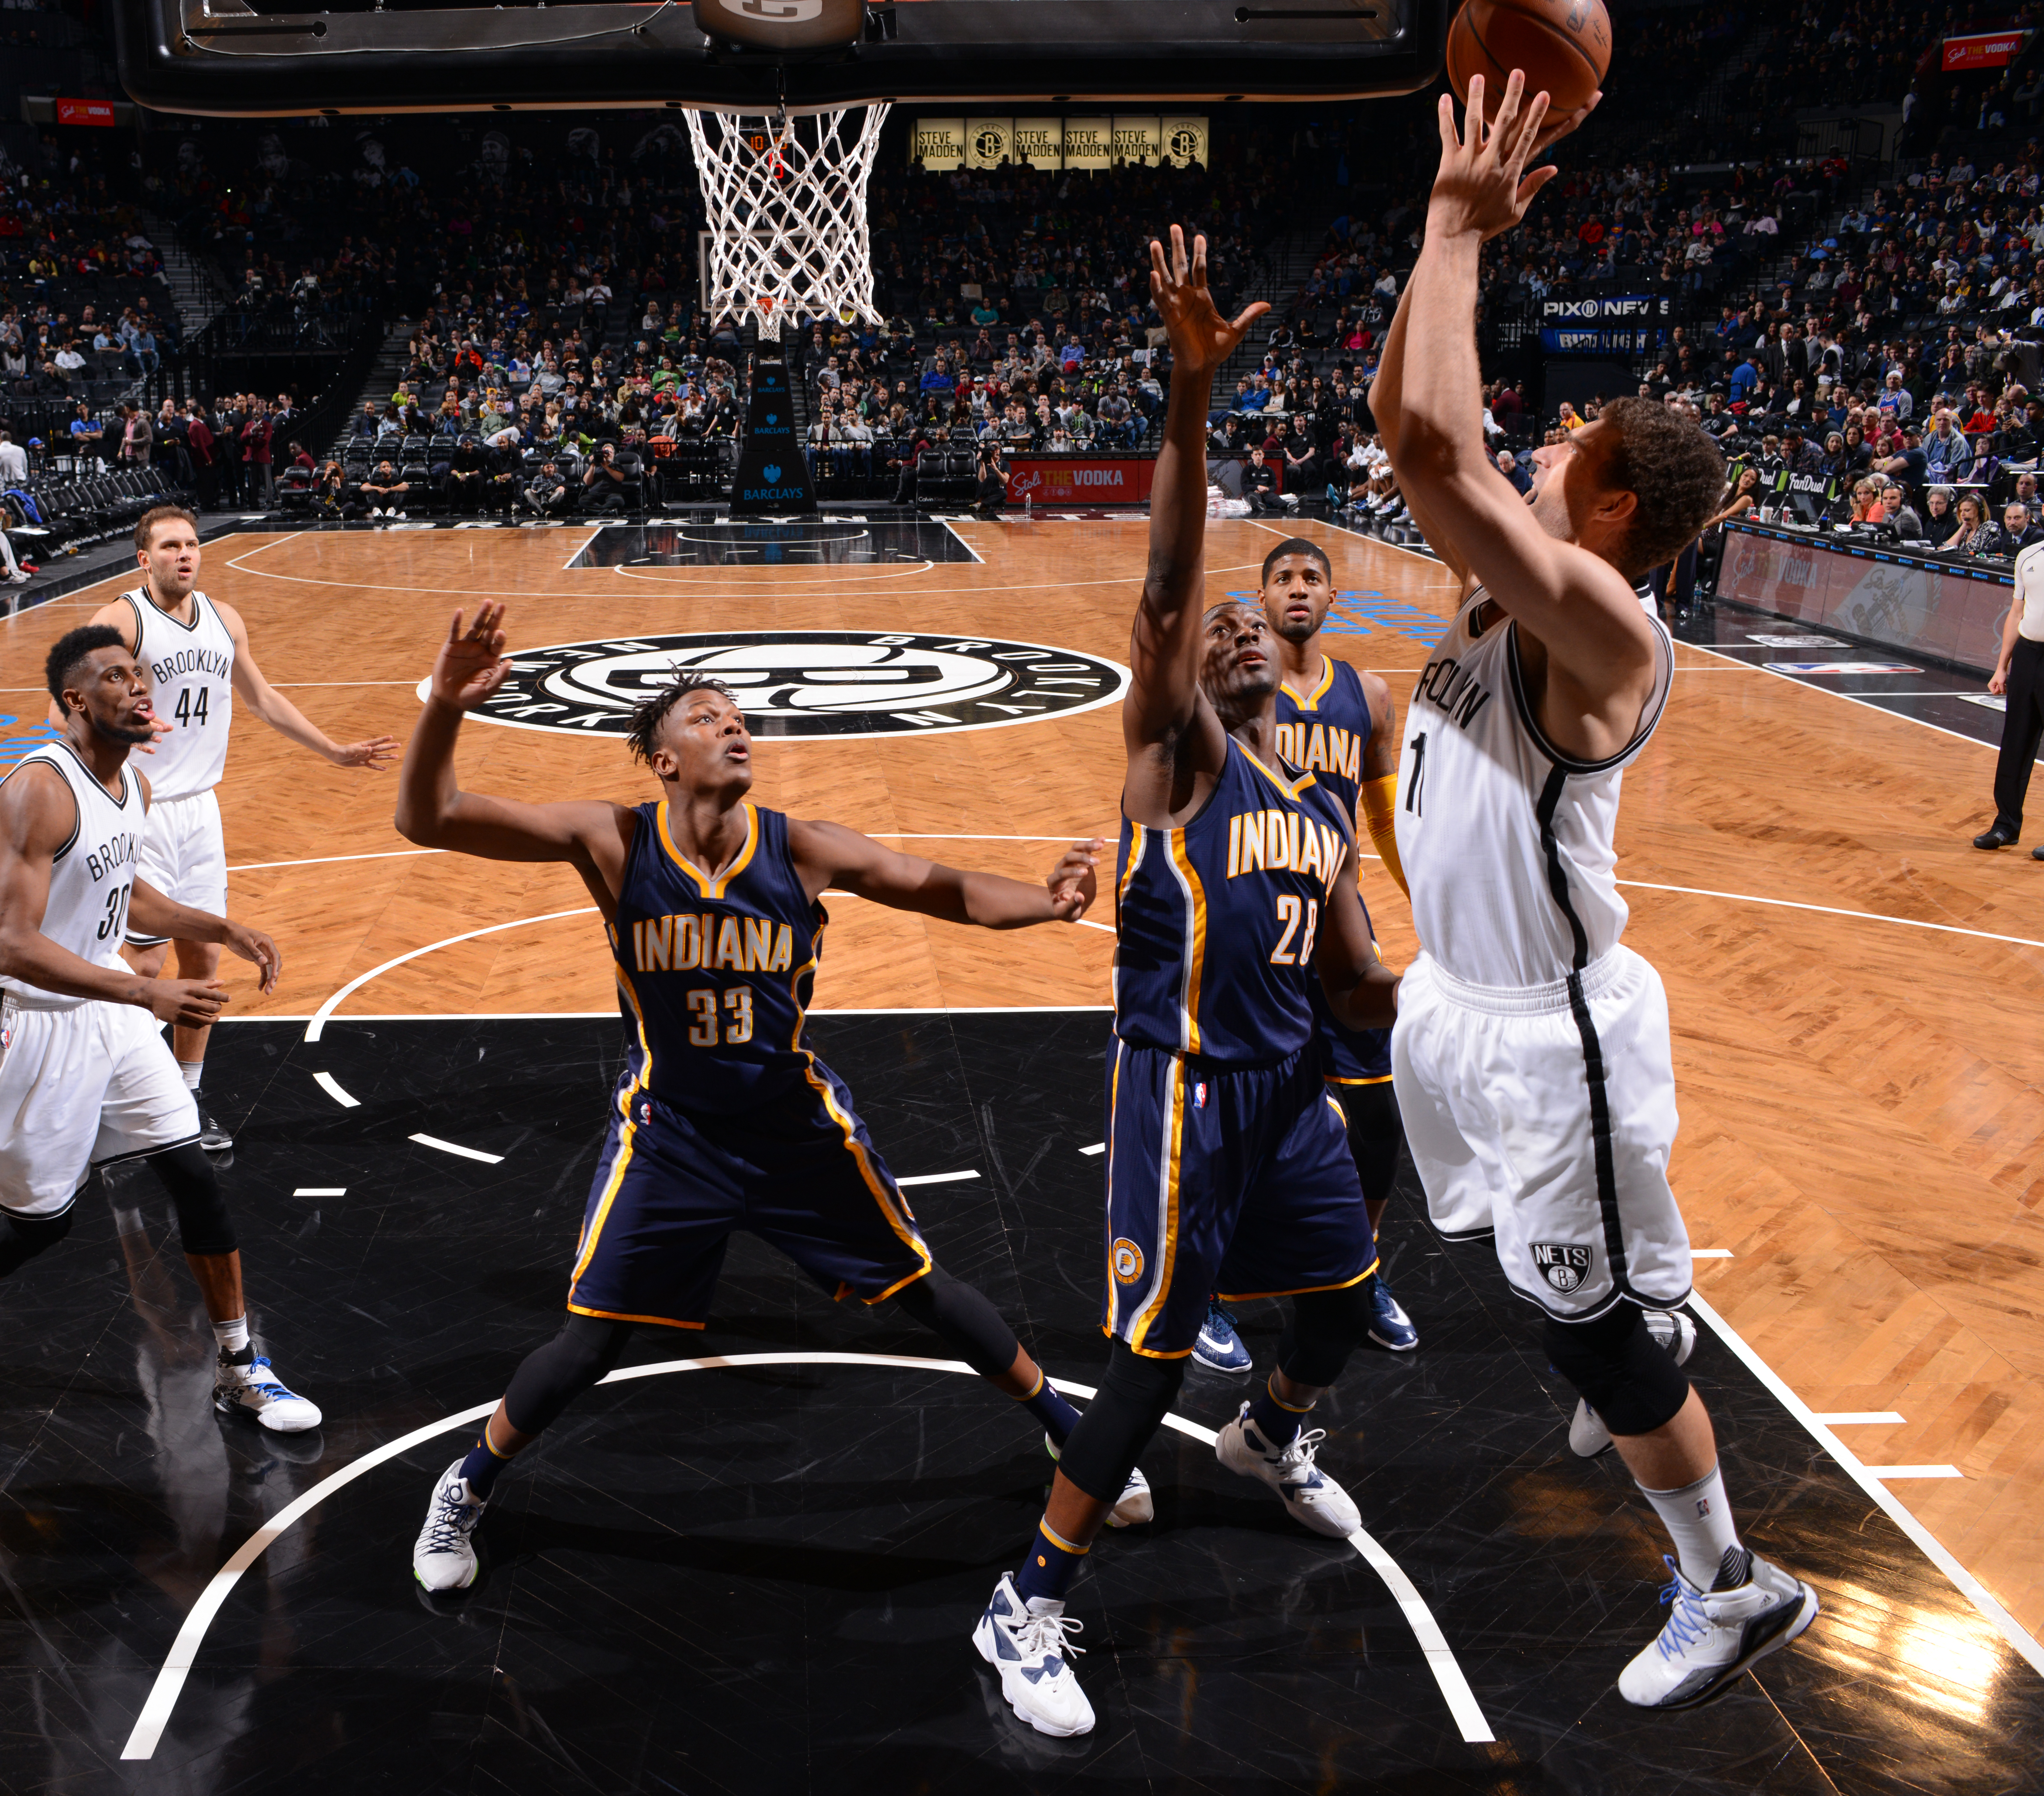 BROOKLYN, NY - MARCH 26:  Brook Lopez #11 of the Brooklyn Nets goes up for the layup against the Indiana Pacers on March 26, 2016 at Barclays Center in Brooklyn, New York. (Photo by Jesse D. Garrabrant/NBAE via Getty Images)